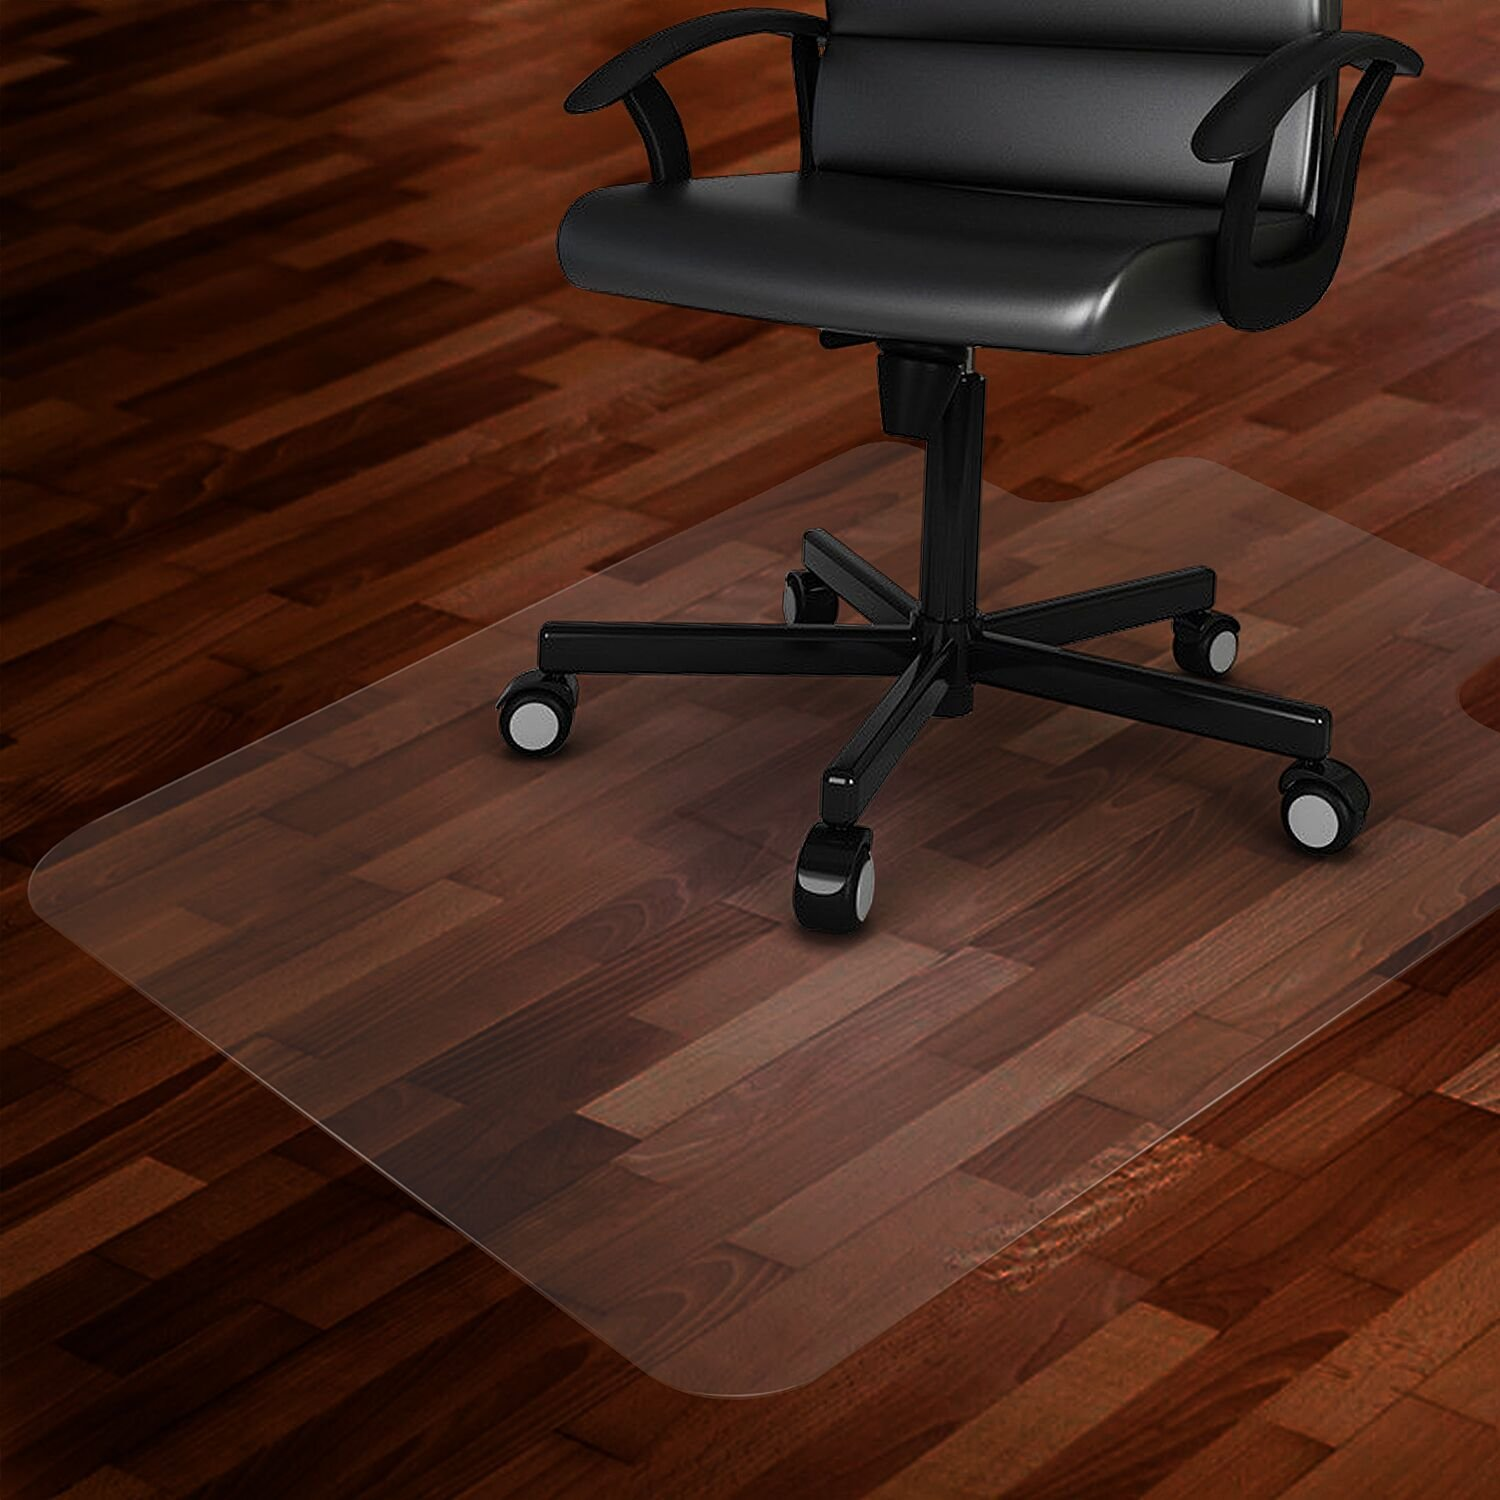 for office mats protector carpet bamboo floor desk mat floors chair best hardwood